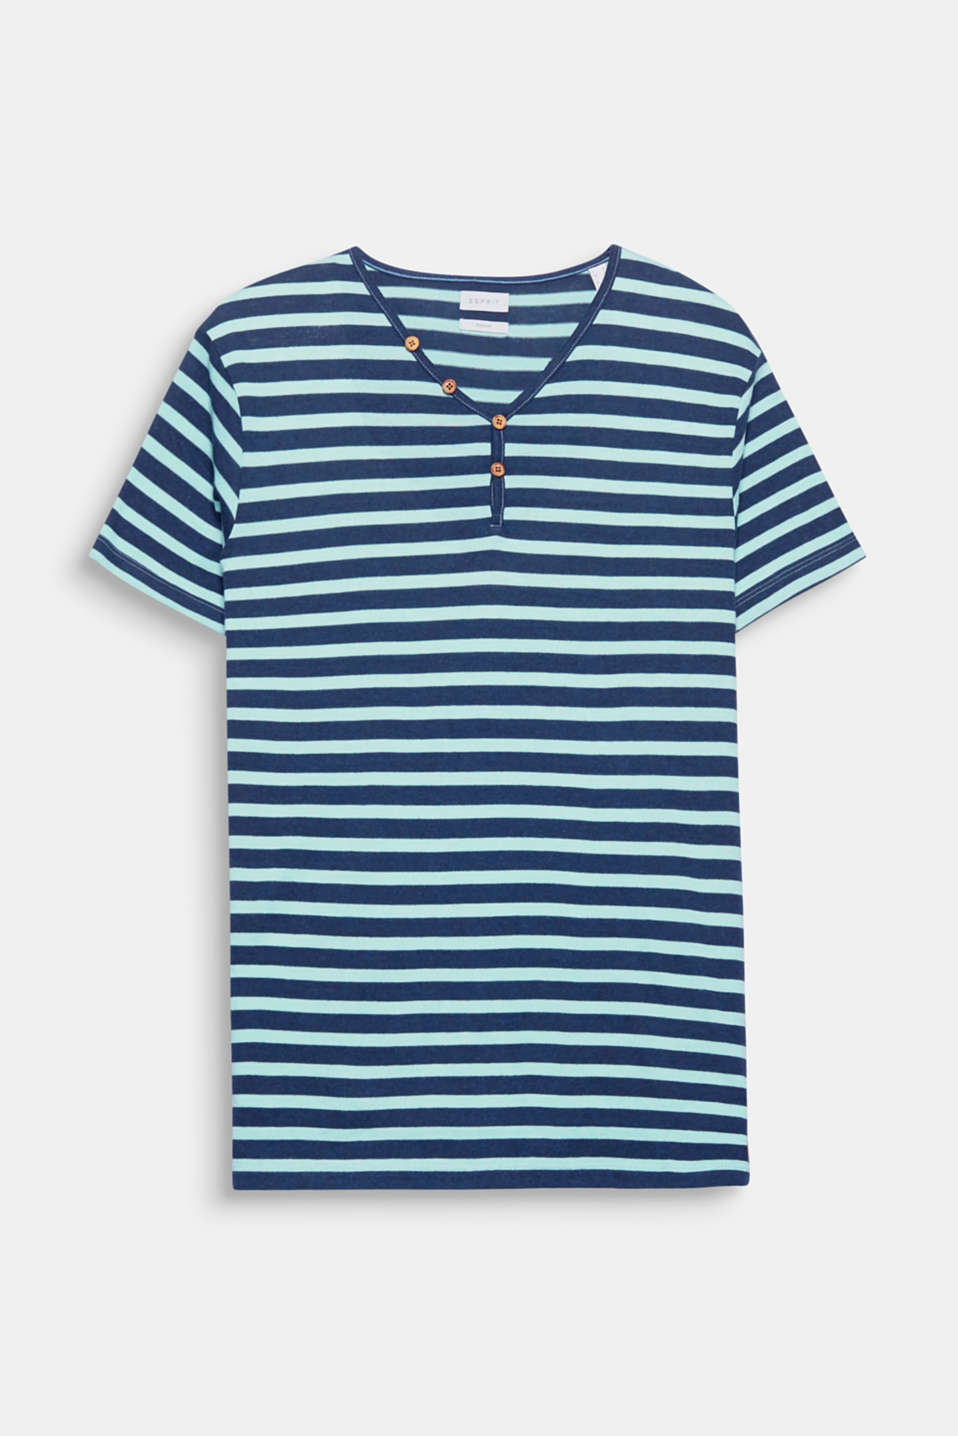 A timeless, sporty basic piece: T-shirt with a Henley neckline, made of blended cotton.